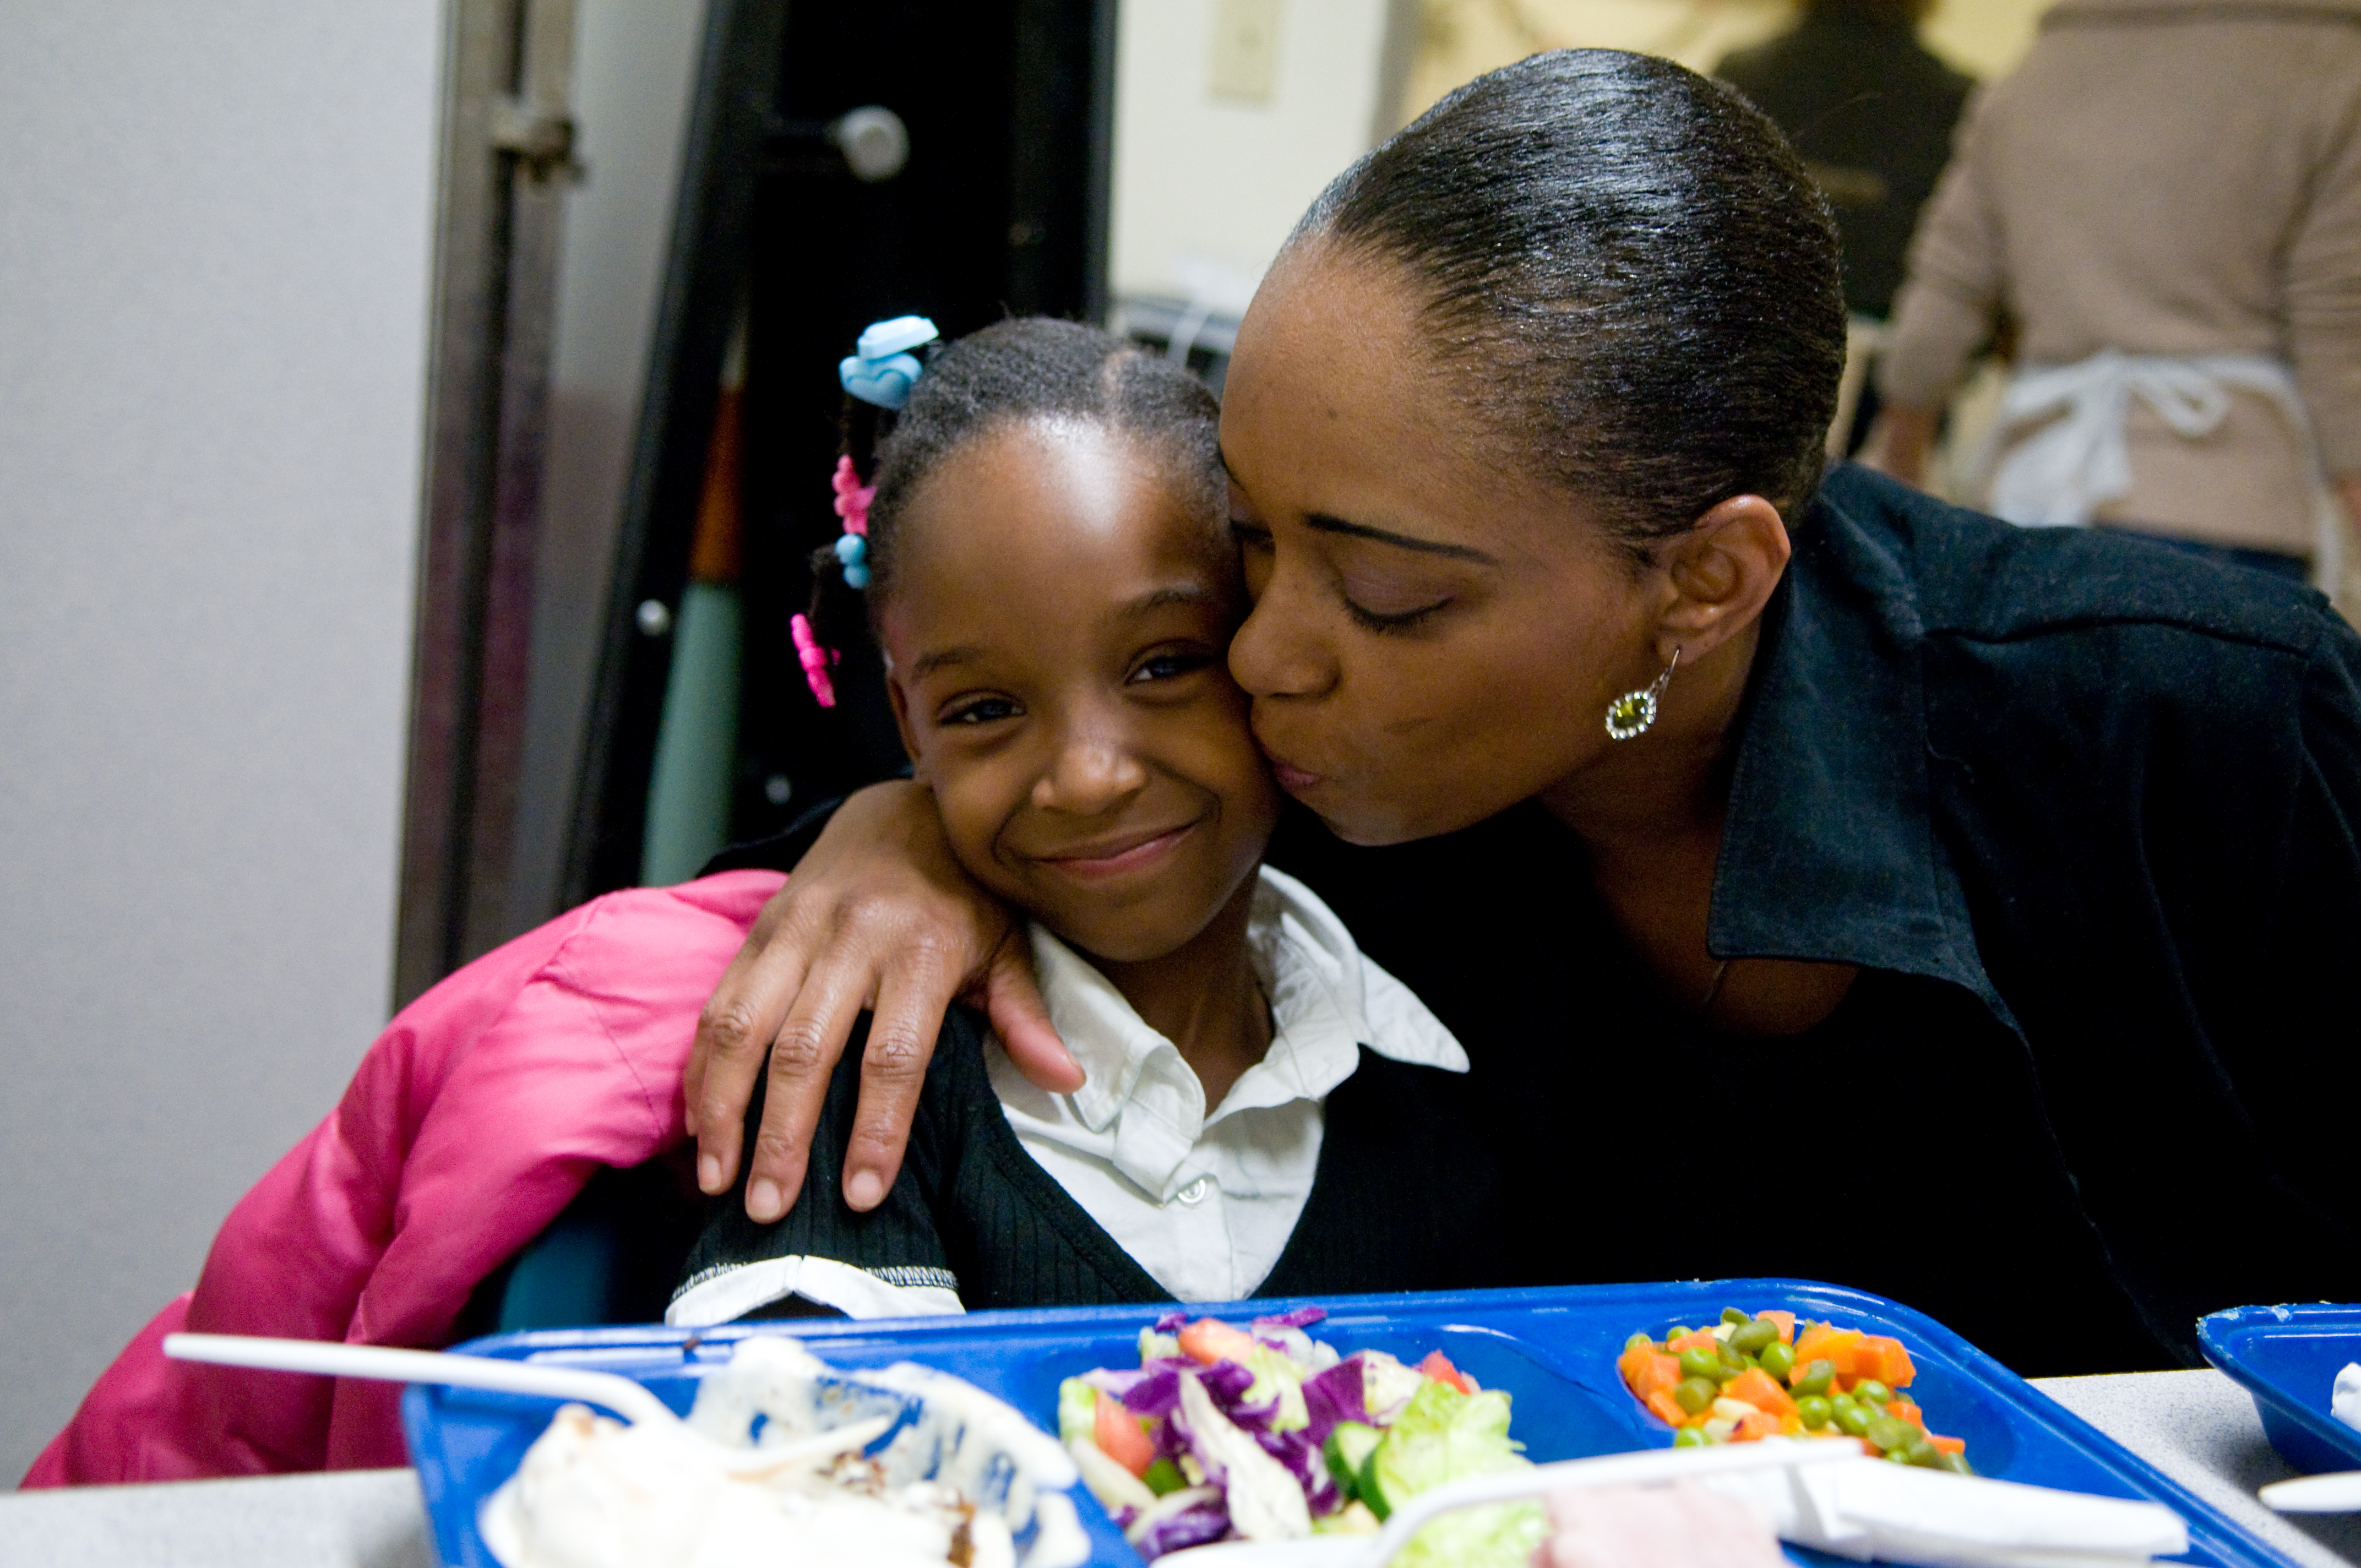 A mother and daughter sharing a meal in GLIDE's Daily Free Meals Program